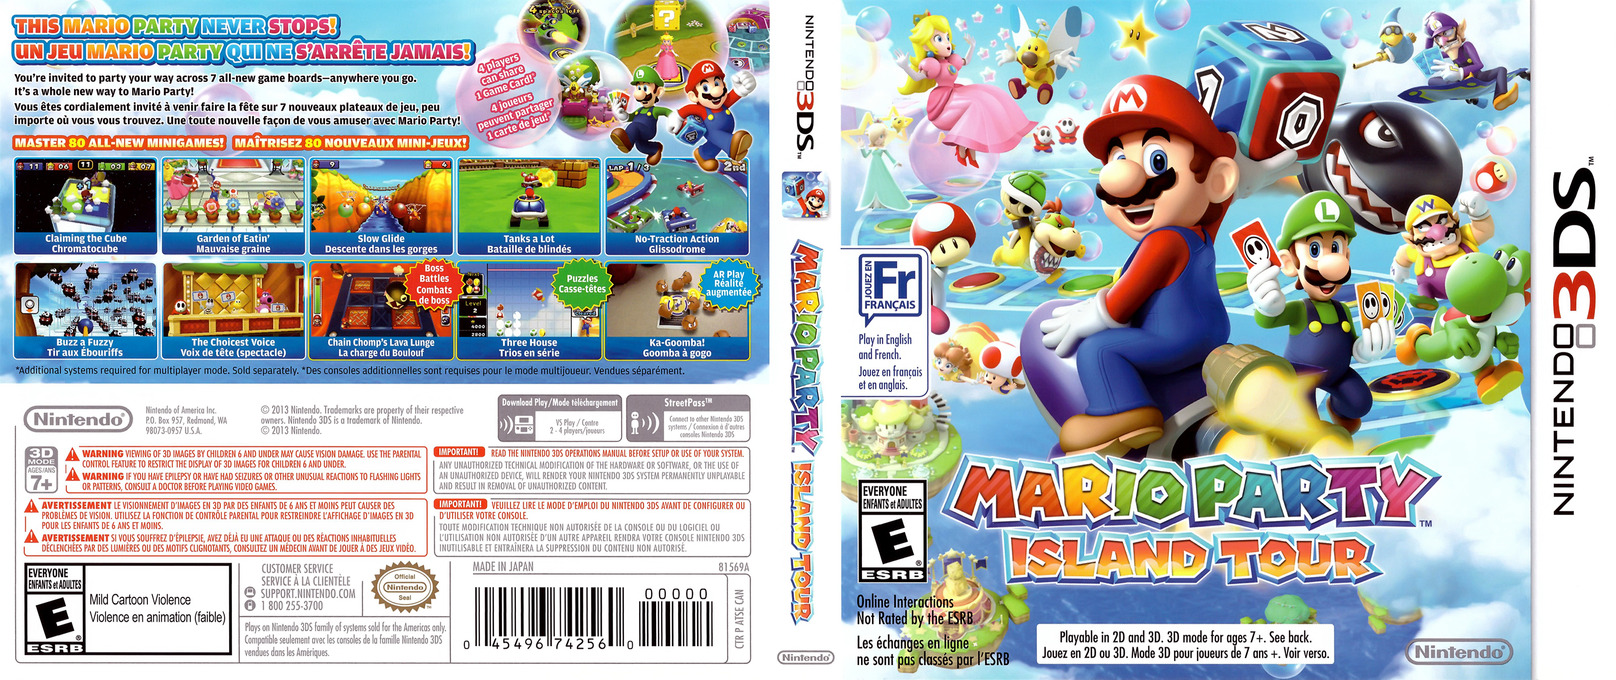 Mario Party - Island Tour 3DS coverfullHQ (ATSE)